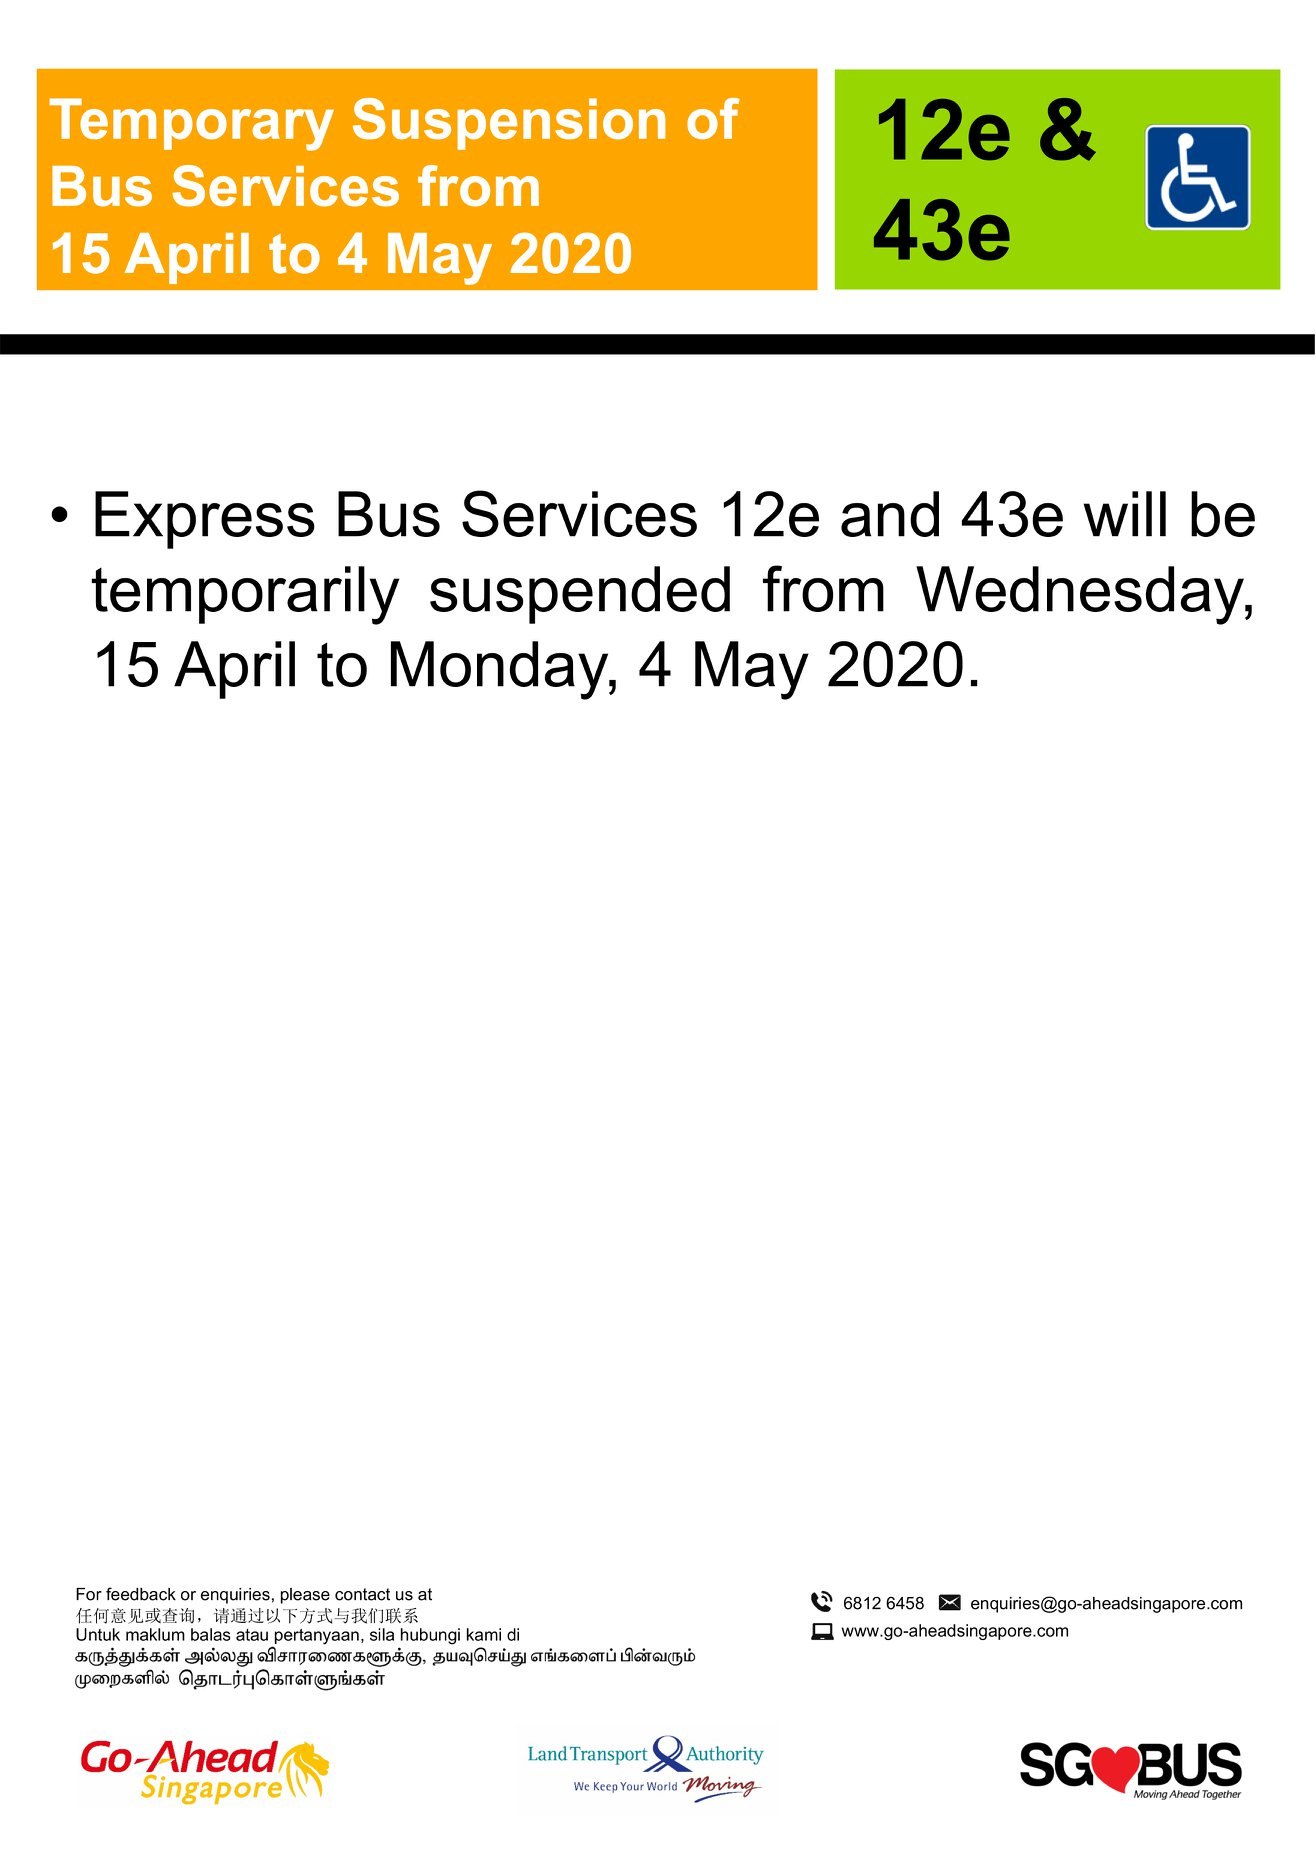 Official announcement from Go-Ahead Singapore on temporary bus service suspension during COVID-19 Circuit Breaker measures 15 April 2020.